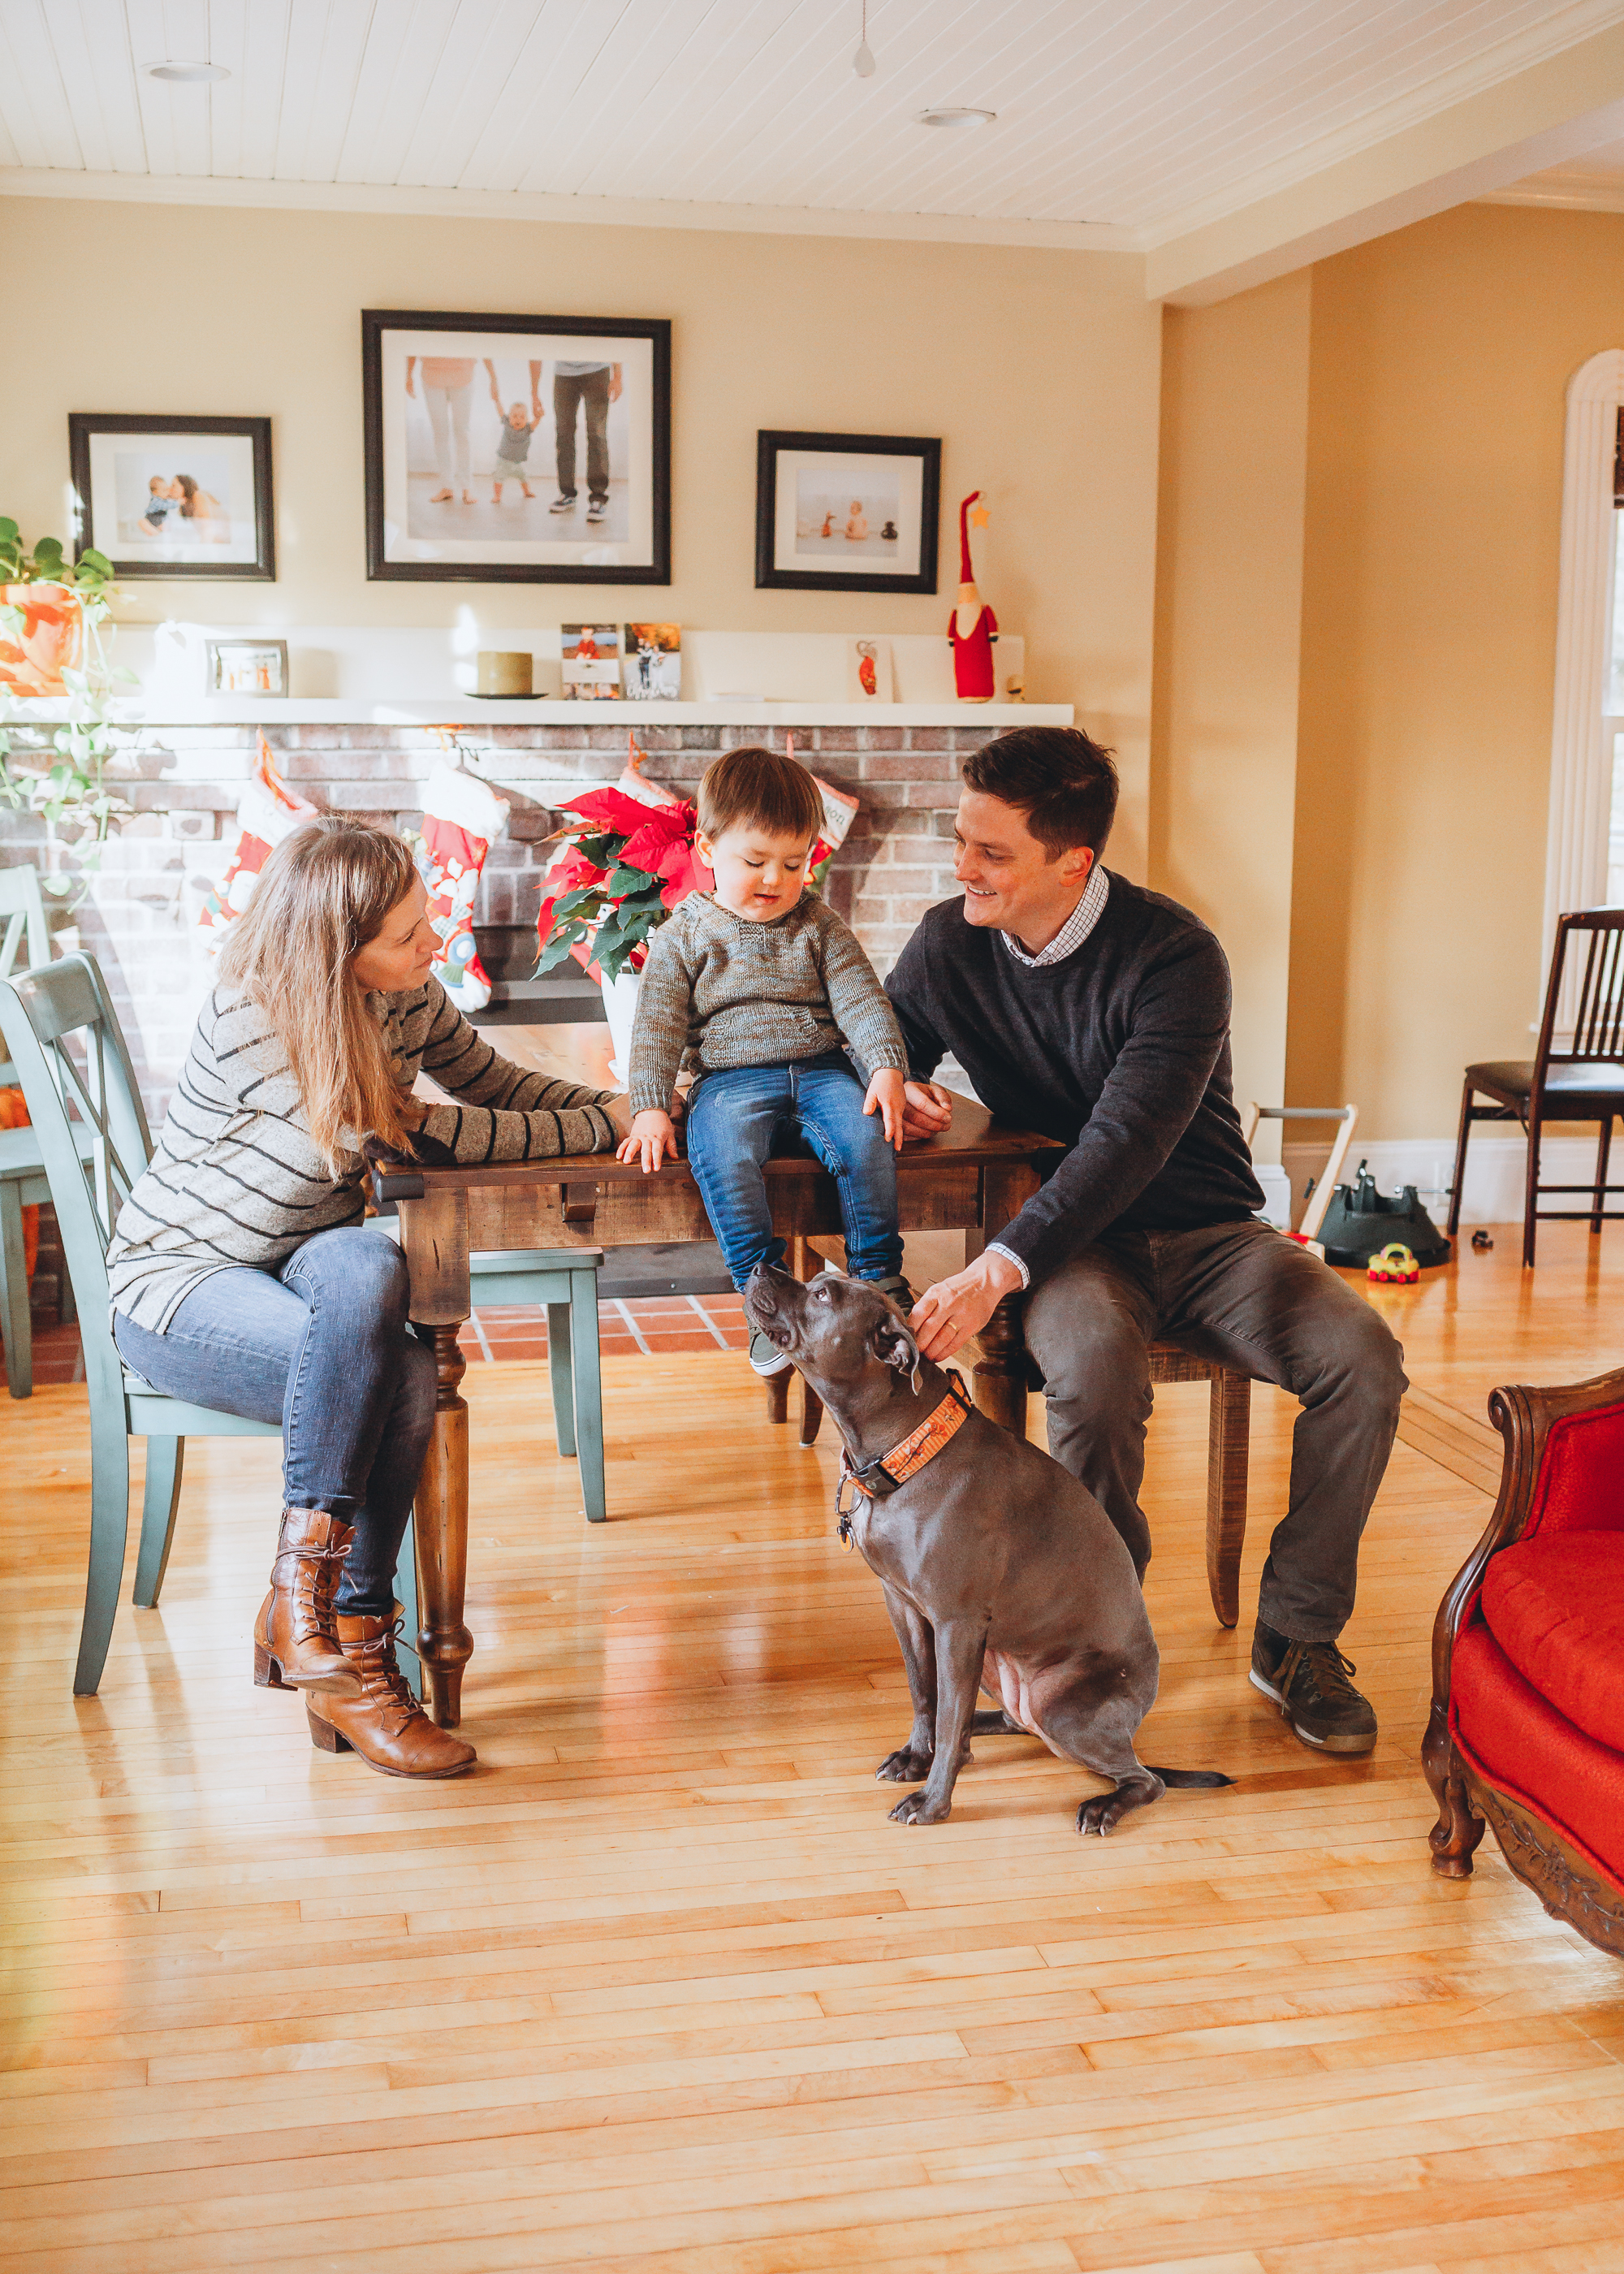 A sunny Sunday morning in their new home in Melrose, Massachusetts. Boston family portraits by Joy LeDuc.